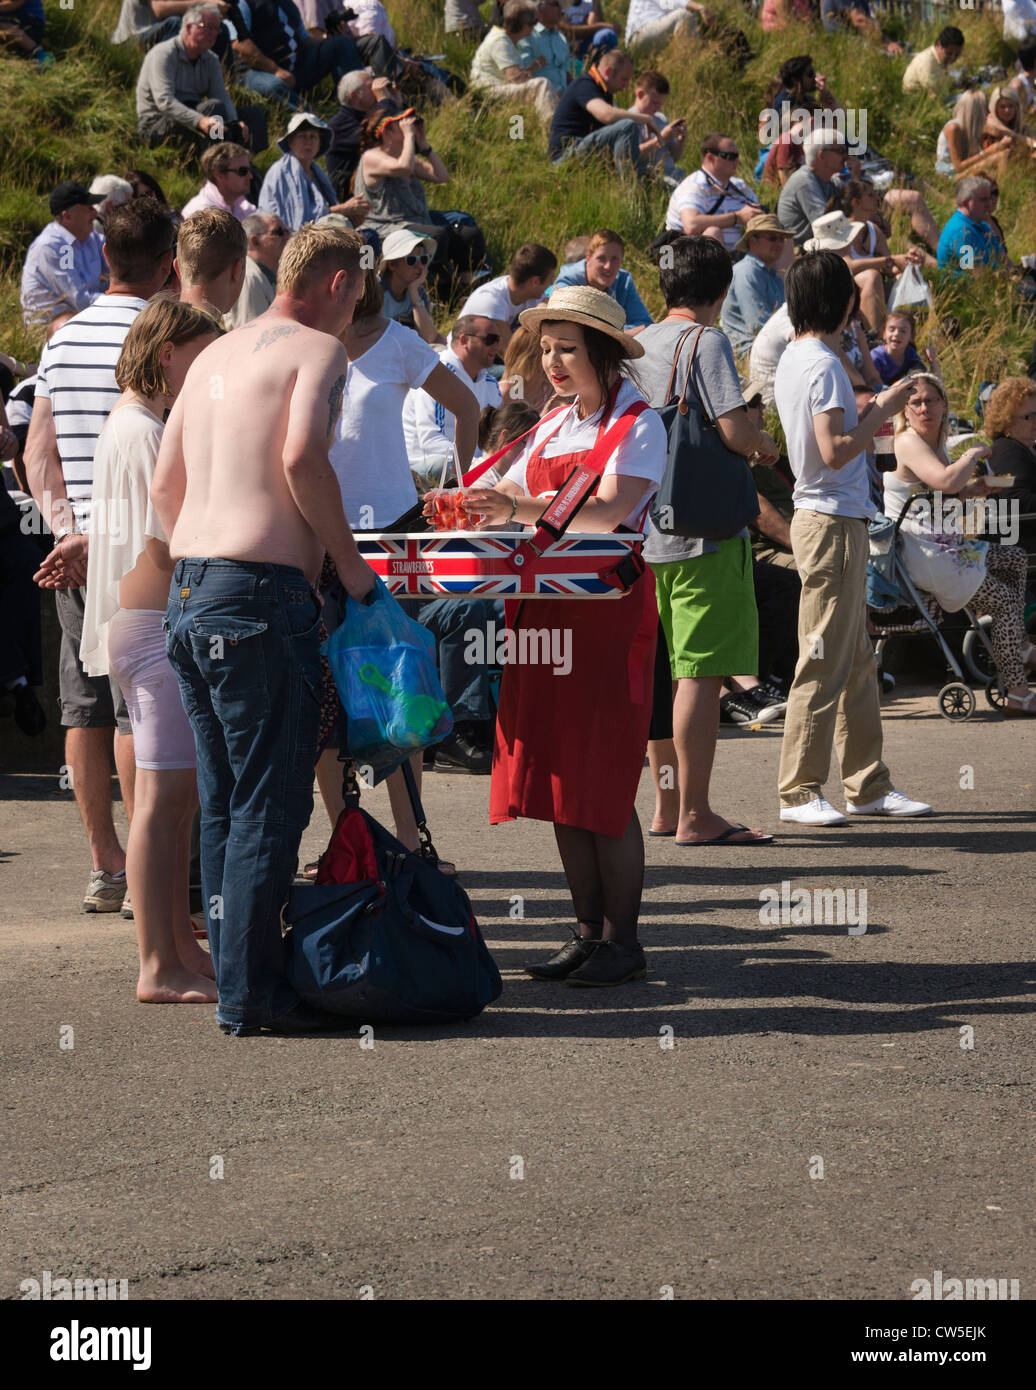 Strawberry seller on an English seaside prom - Stock Image